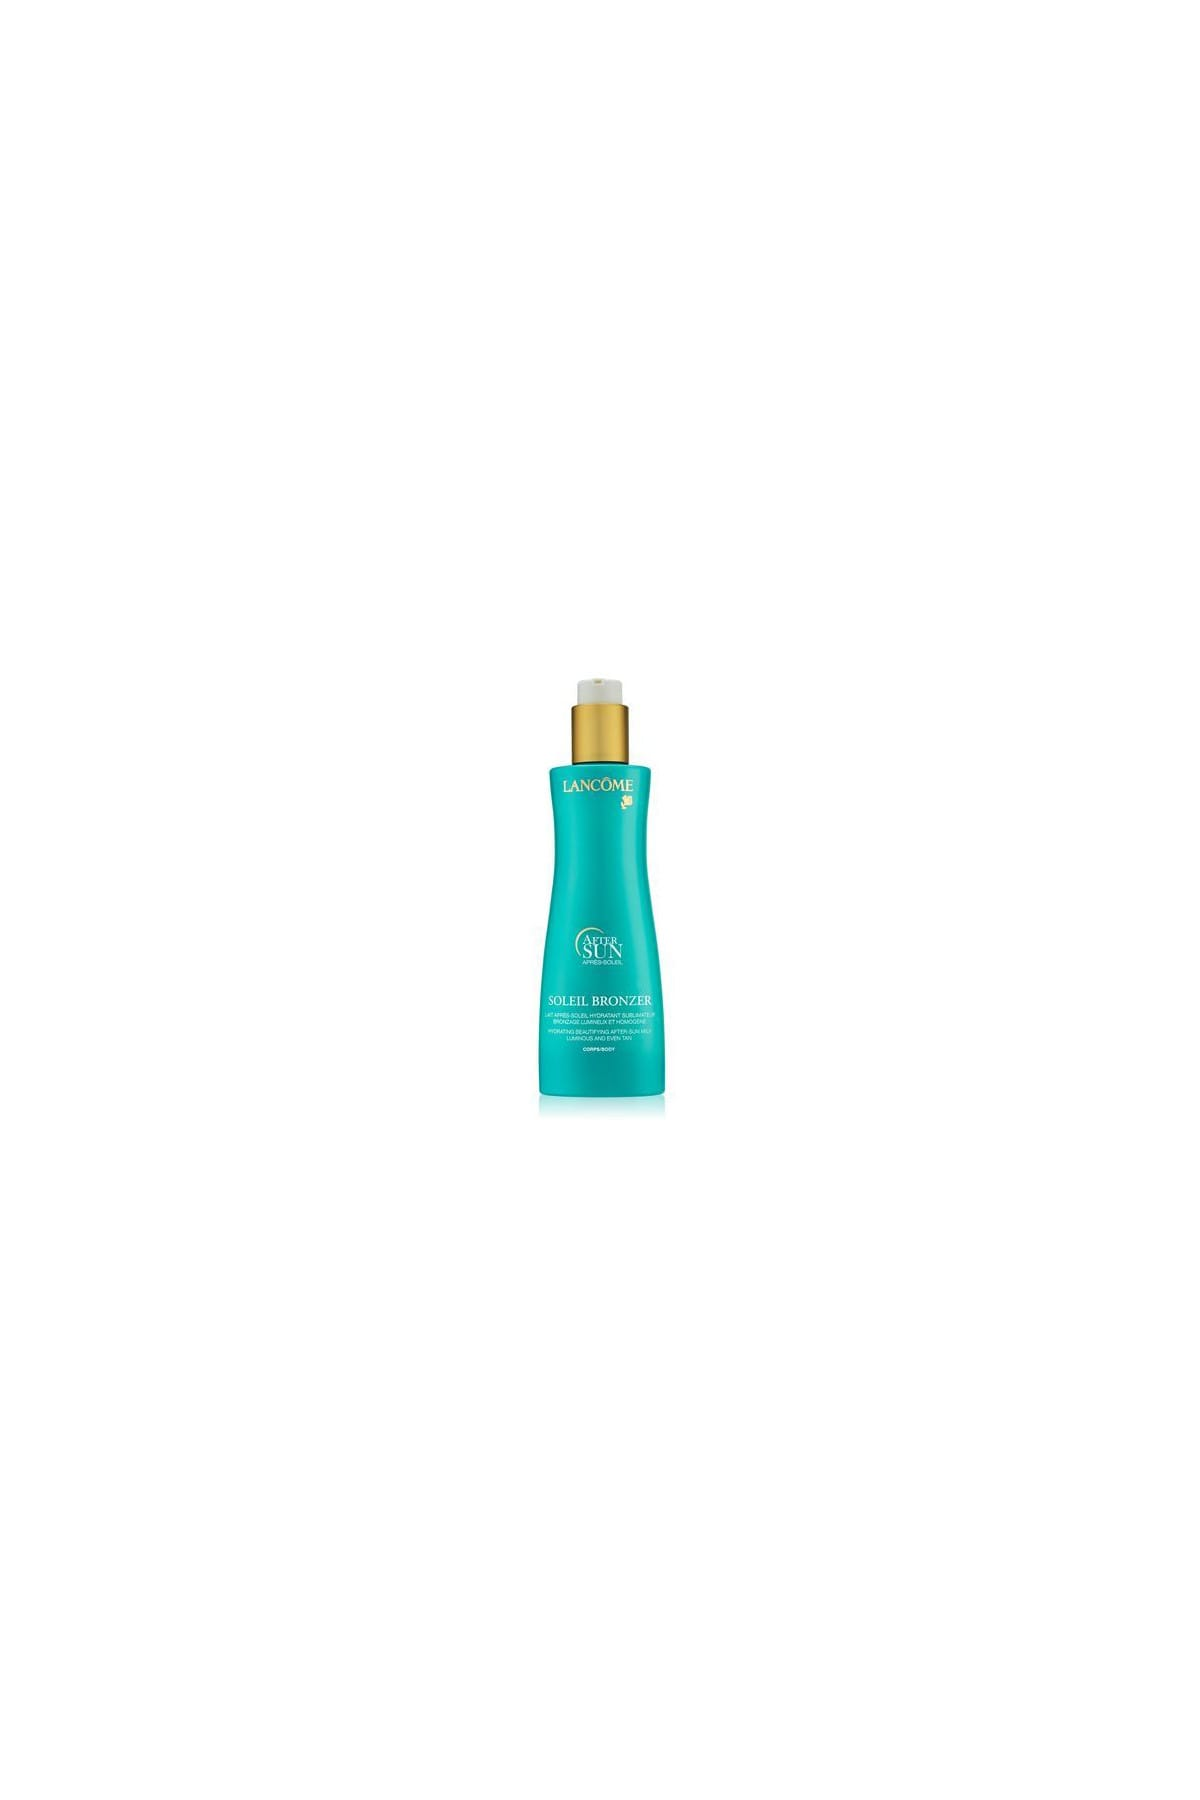 Lancome Soleil Bronzer Hydrating Beautifying After Sun Milk 200ml